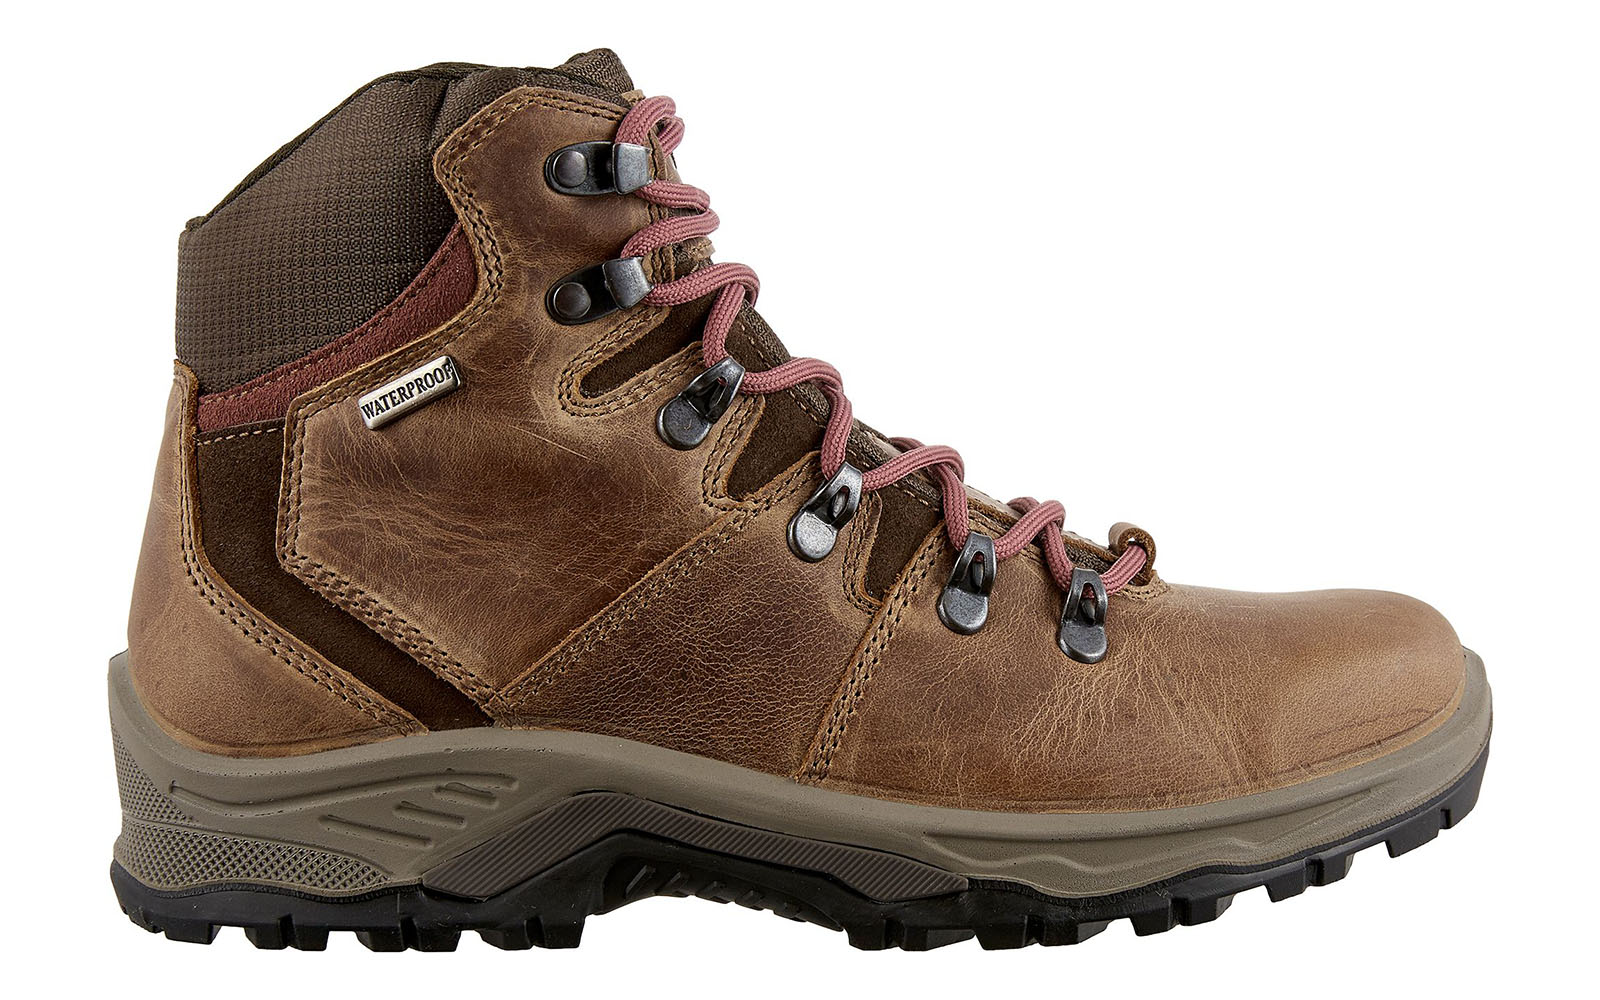 Alpine Design Passare Waterproof Hiking Boots